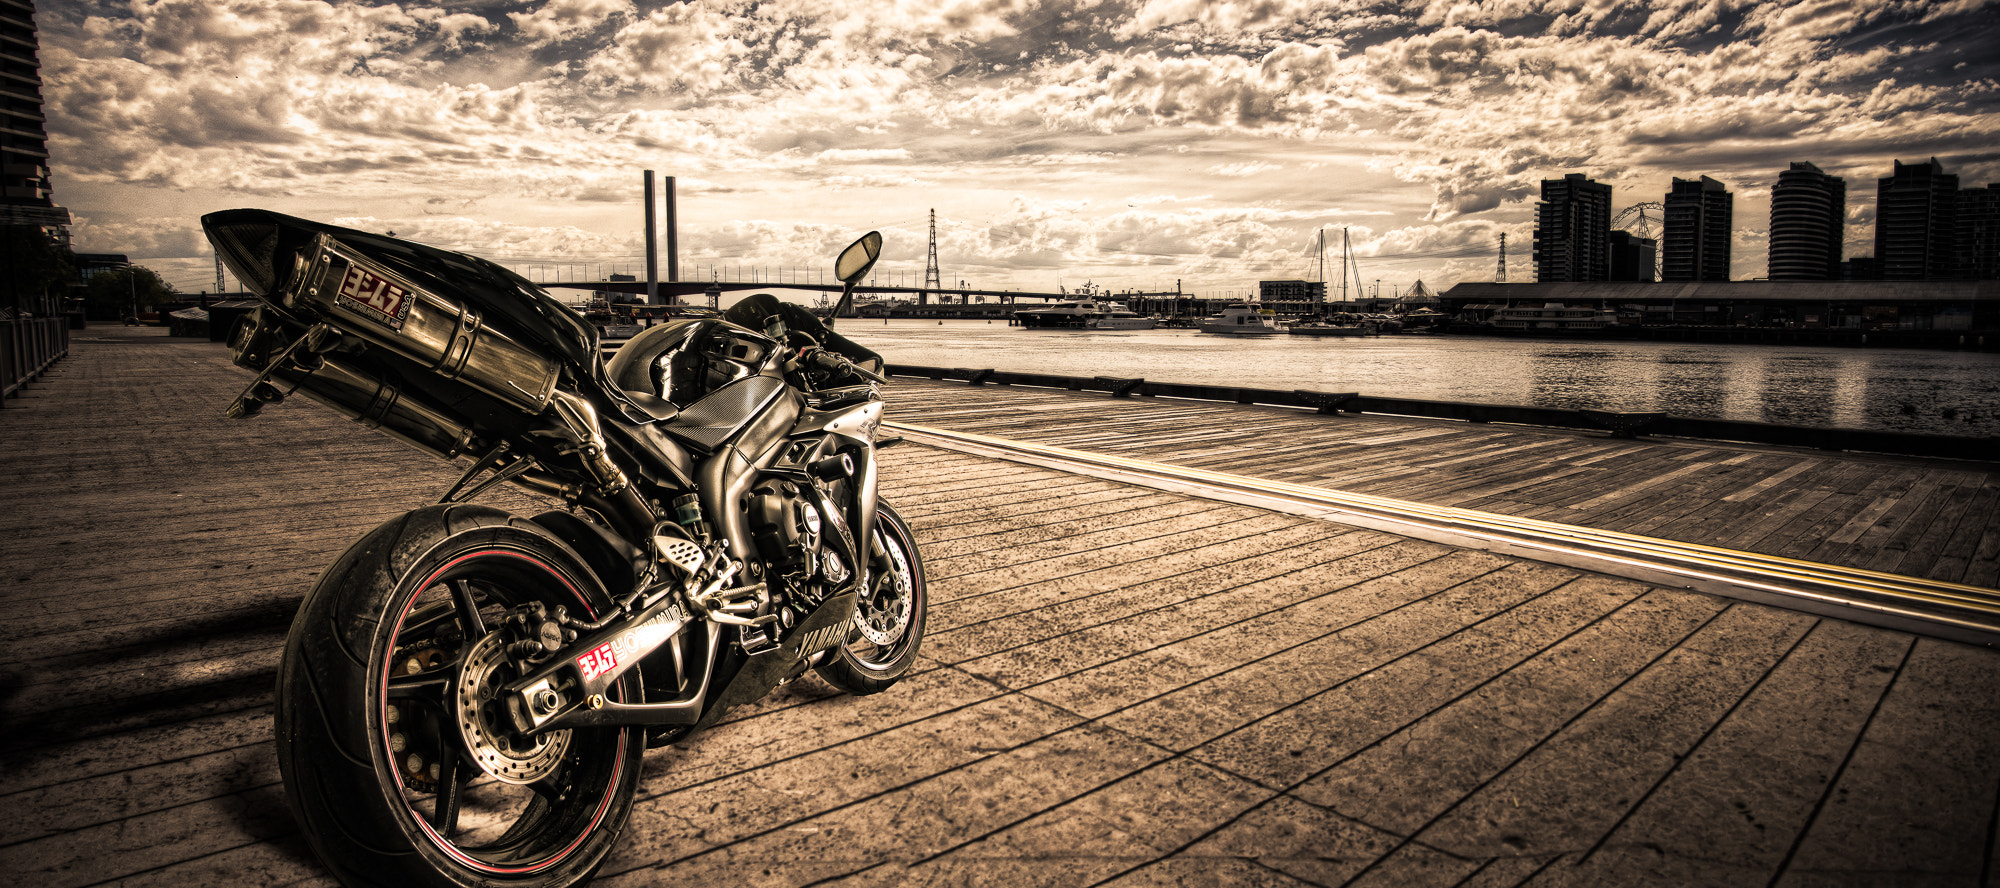 Photograph Yoshimura R1- JMS Tuning by Matt Thomson on 500px